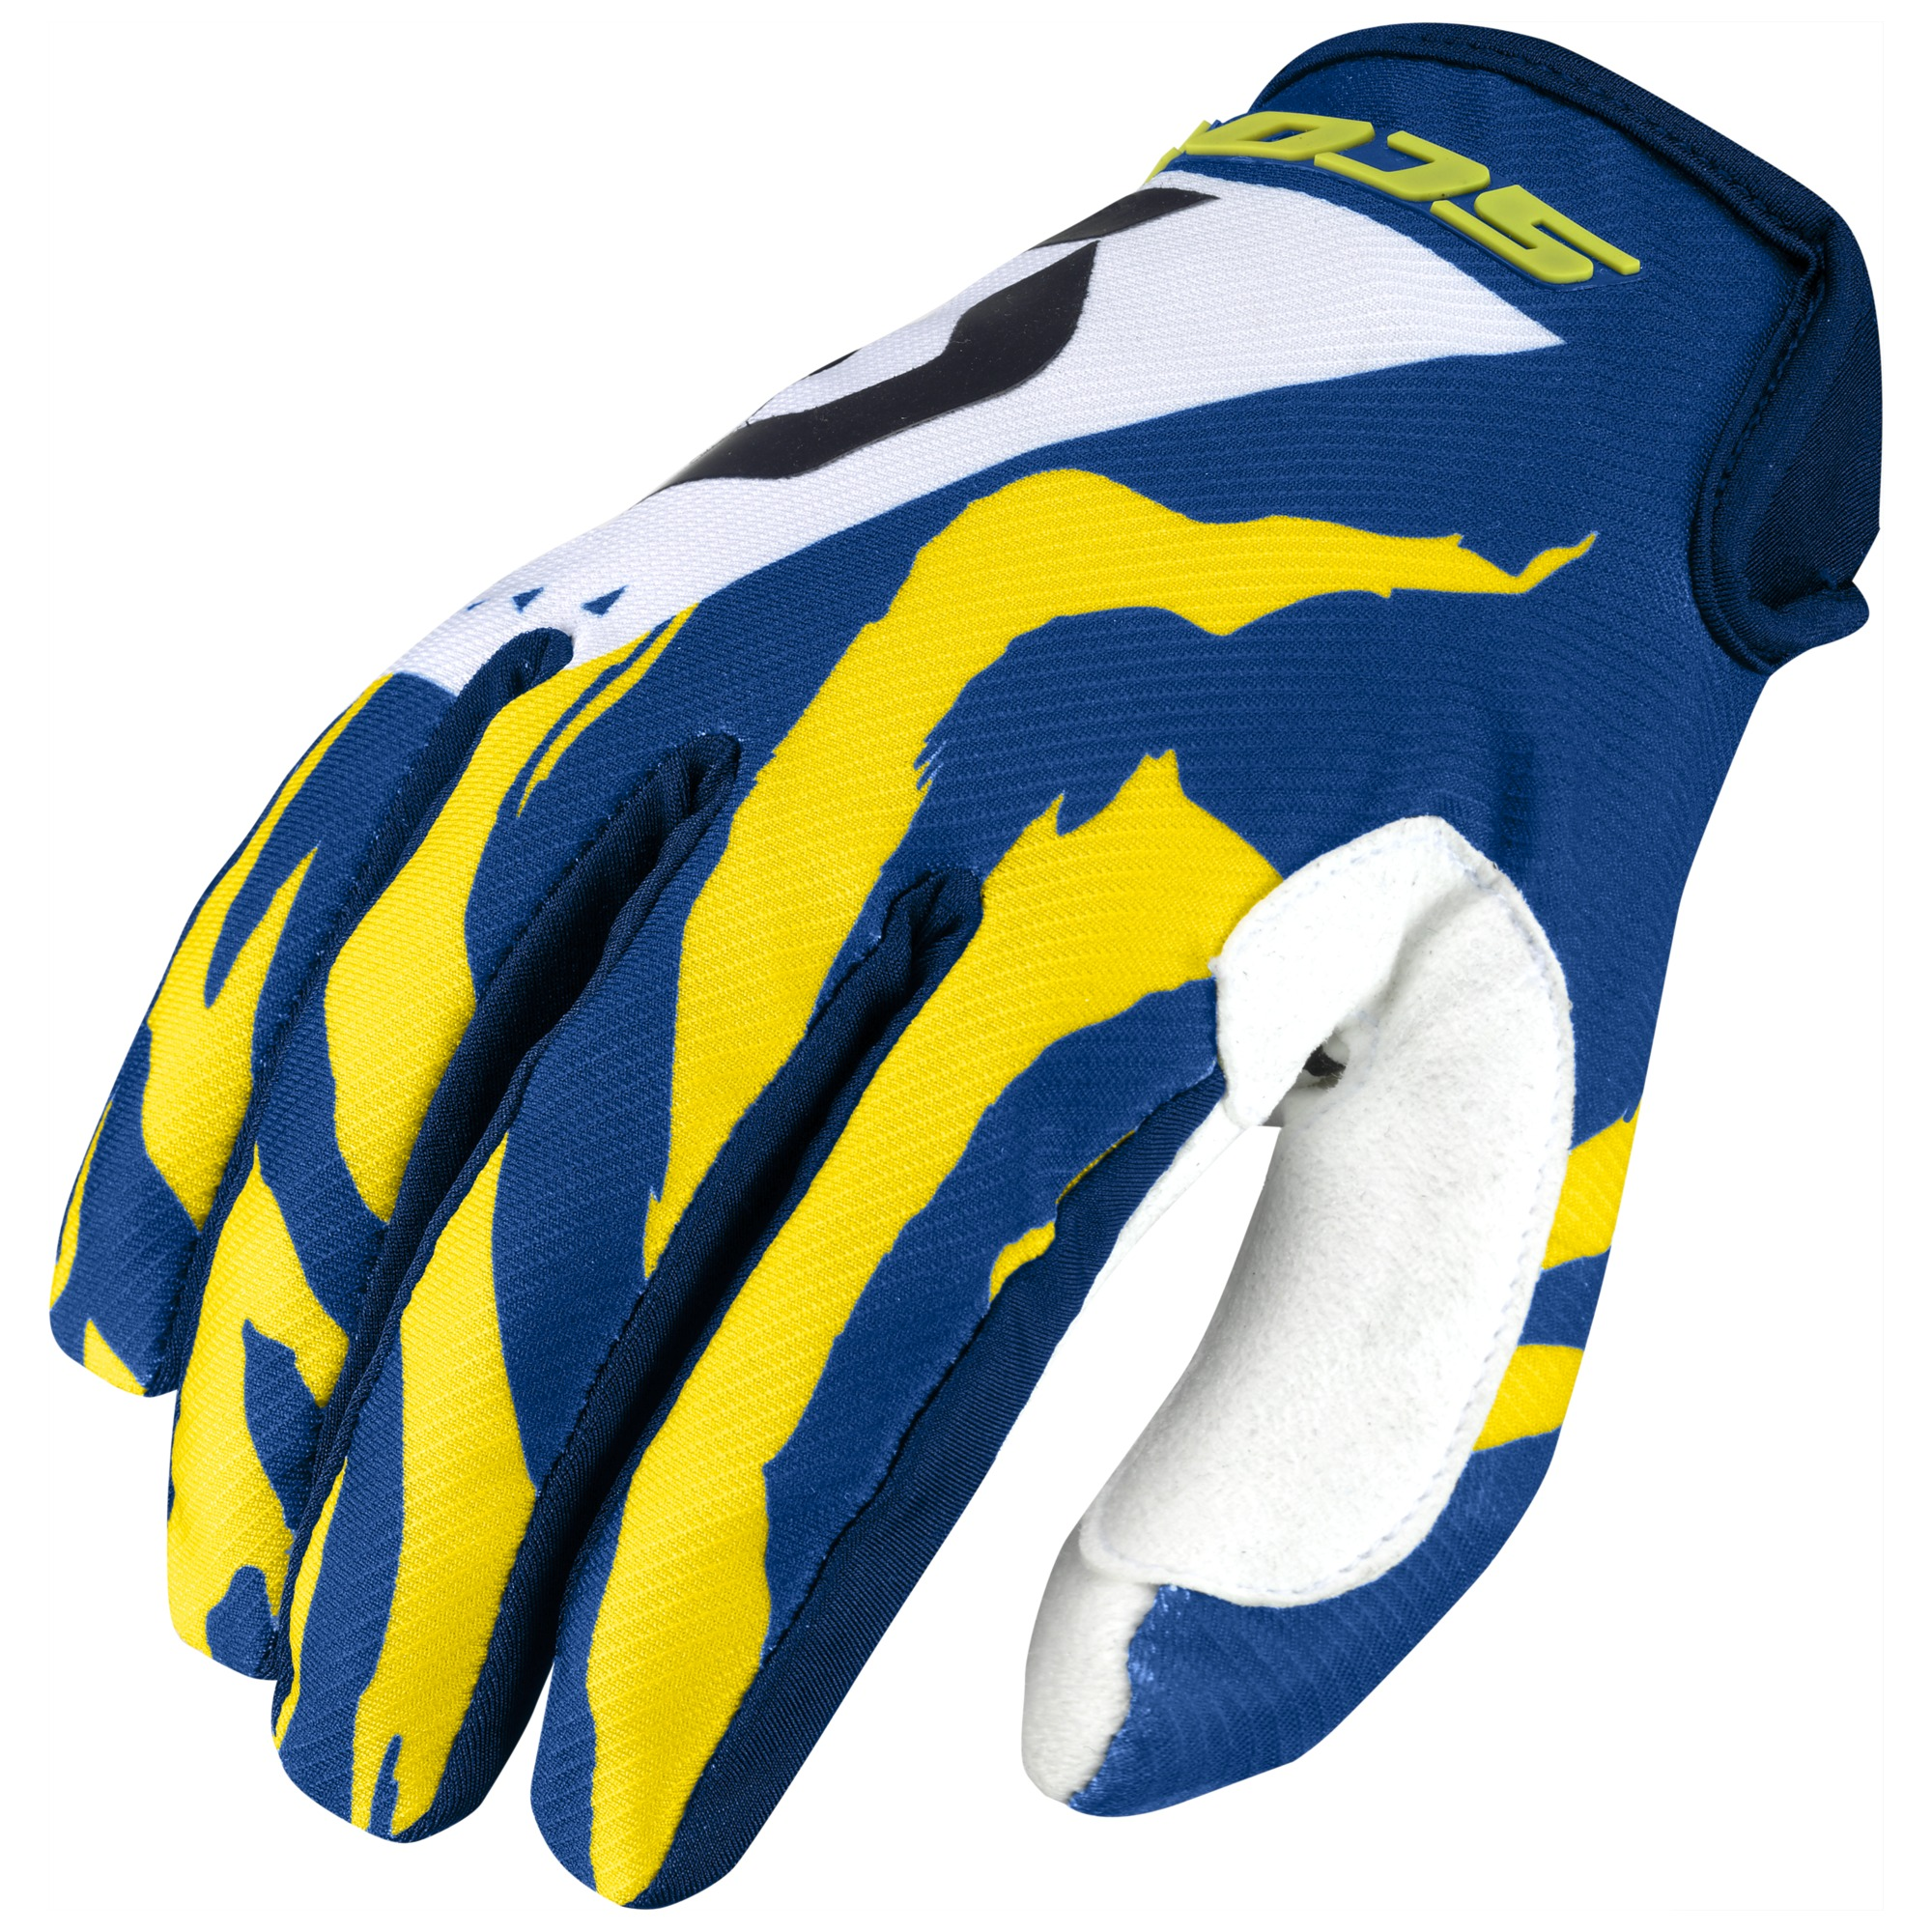 SCOTT 350 Race Glove